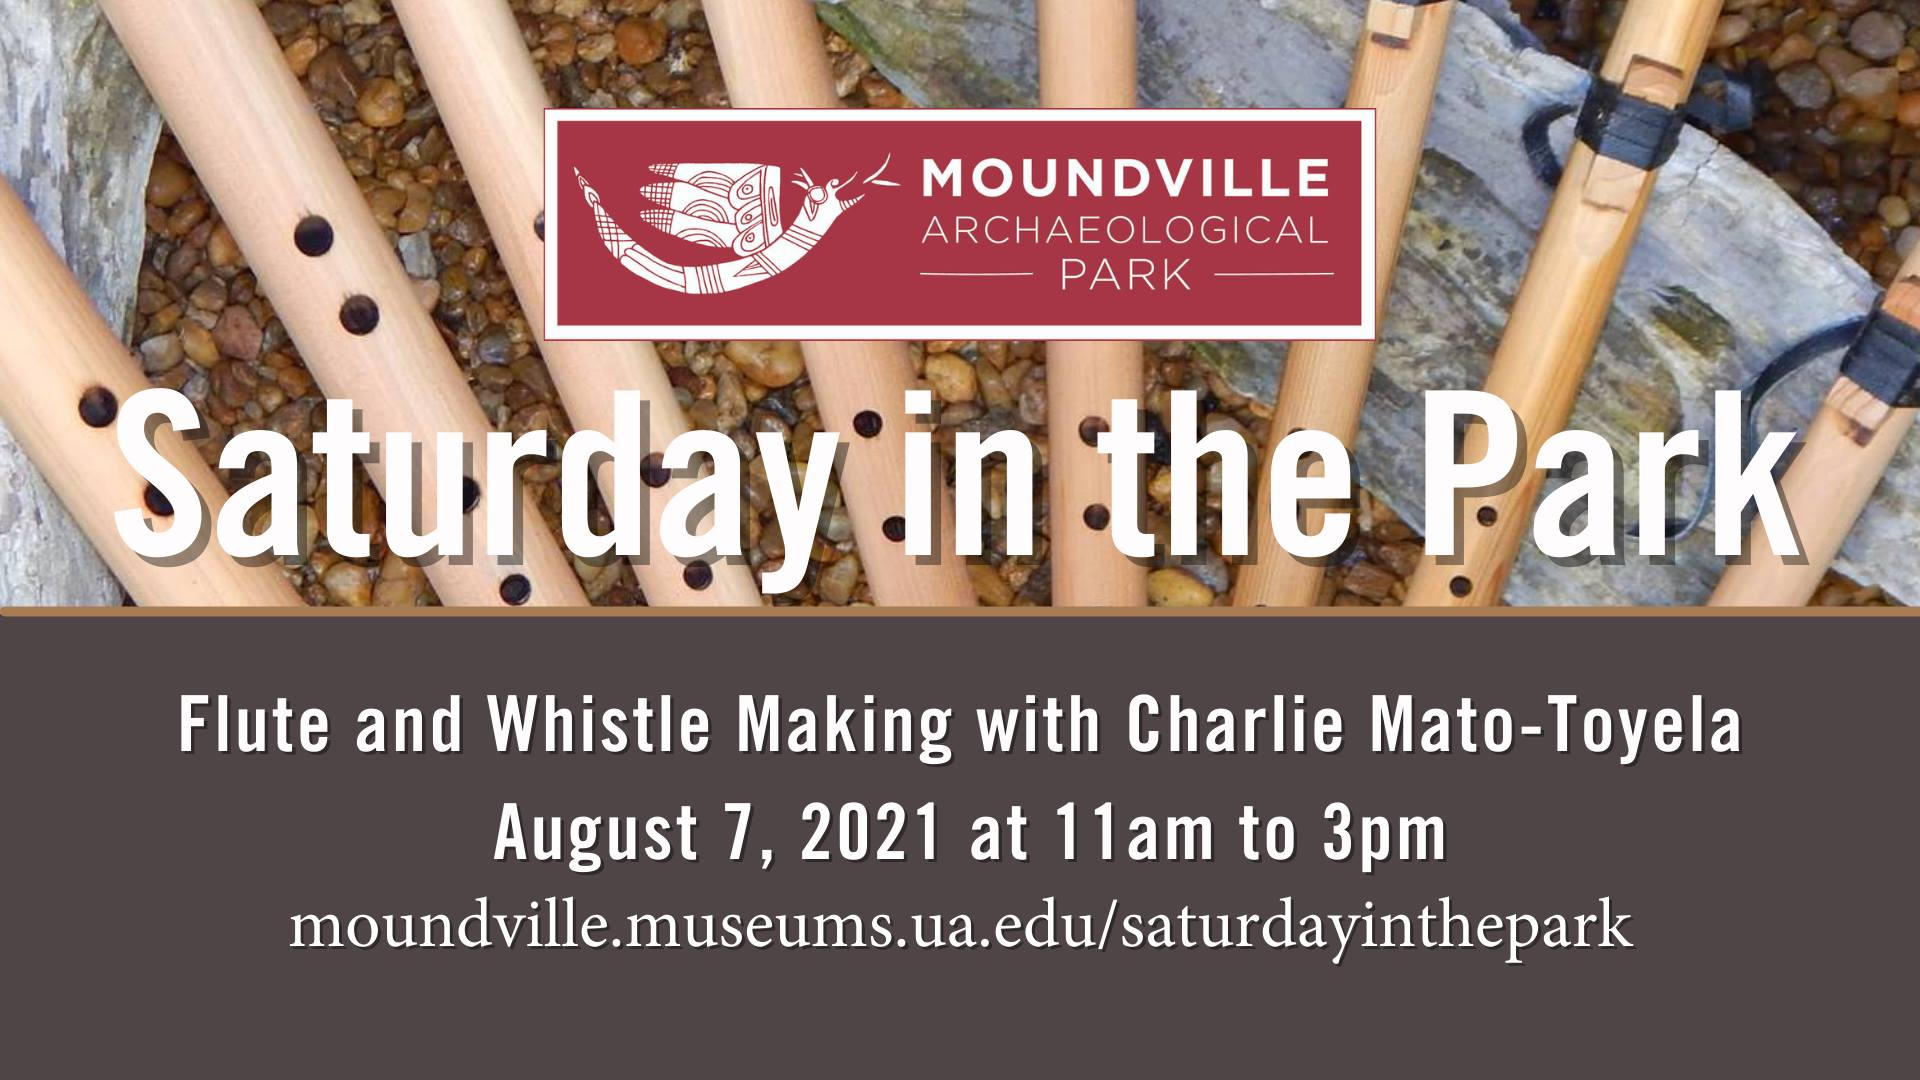 Saturday in the Park: Flute and Whistle Making with Charlie Mato-Toyela